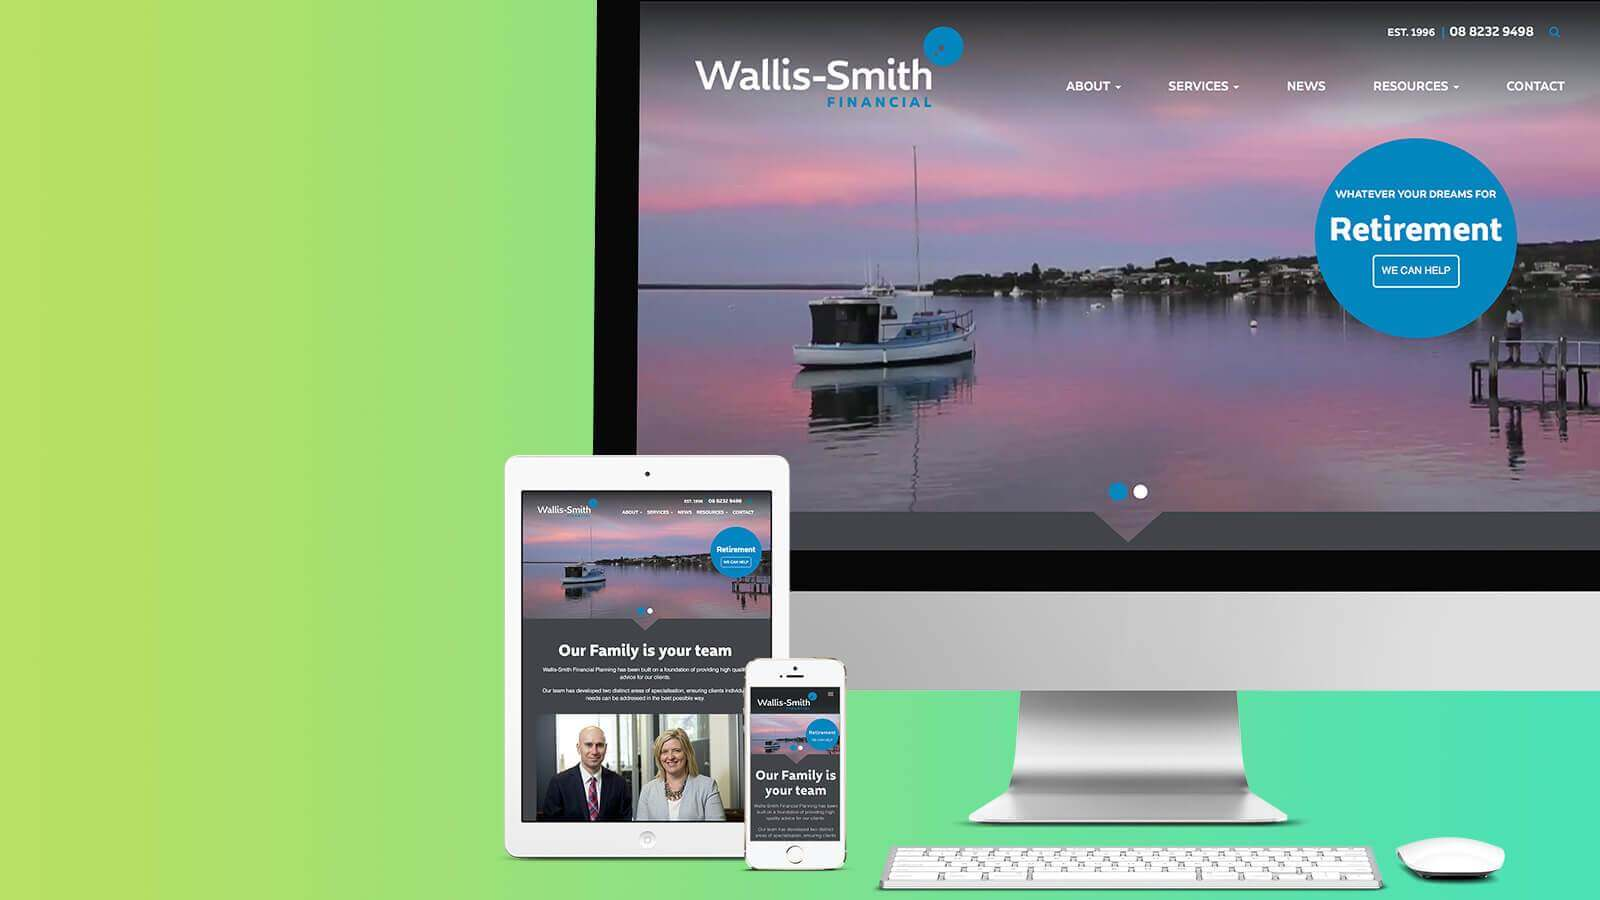 Wallis-Smith Website Development